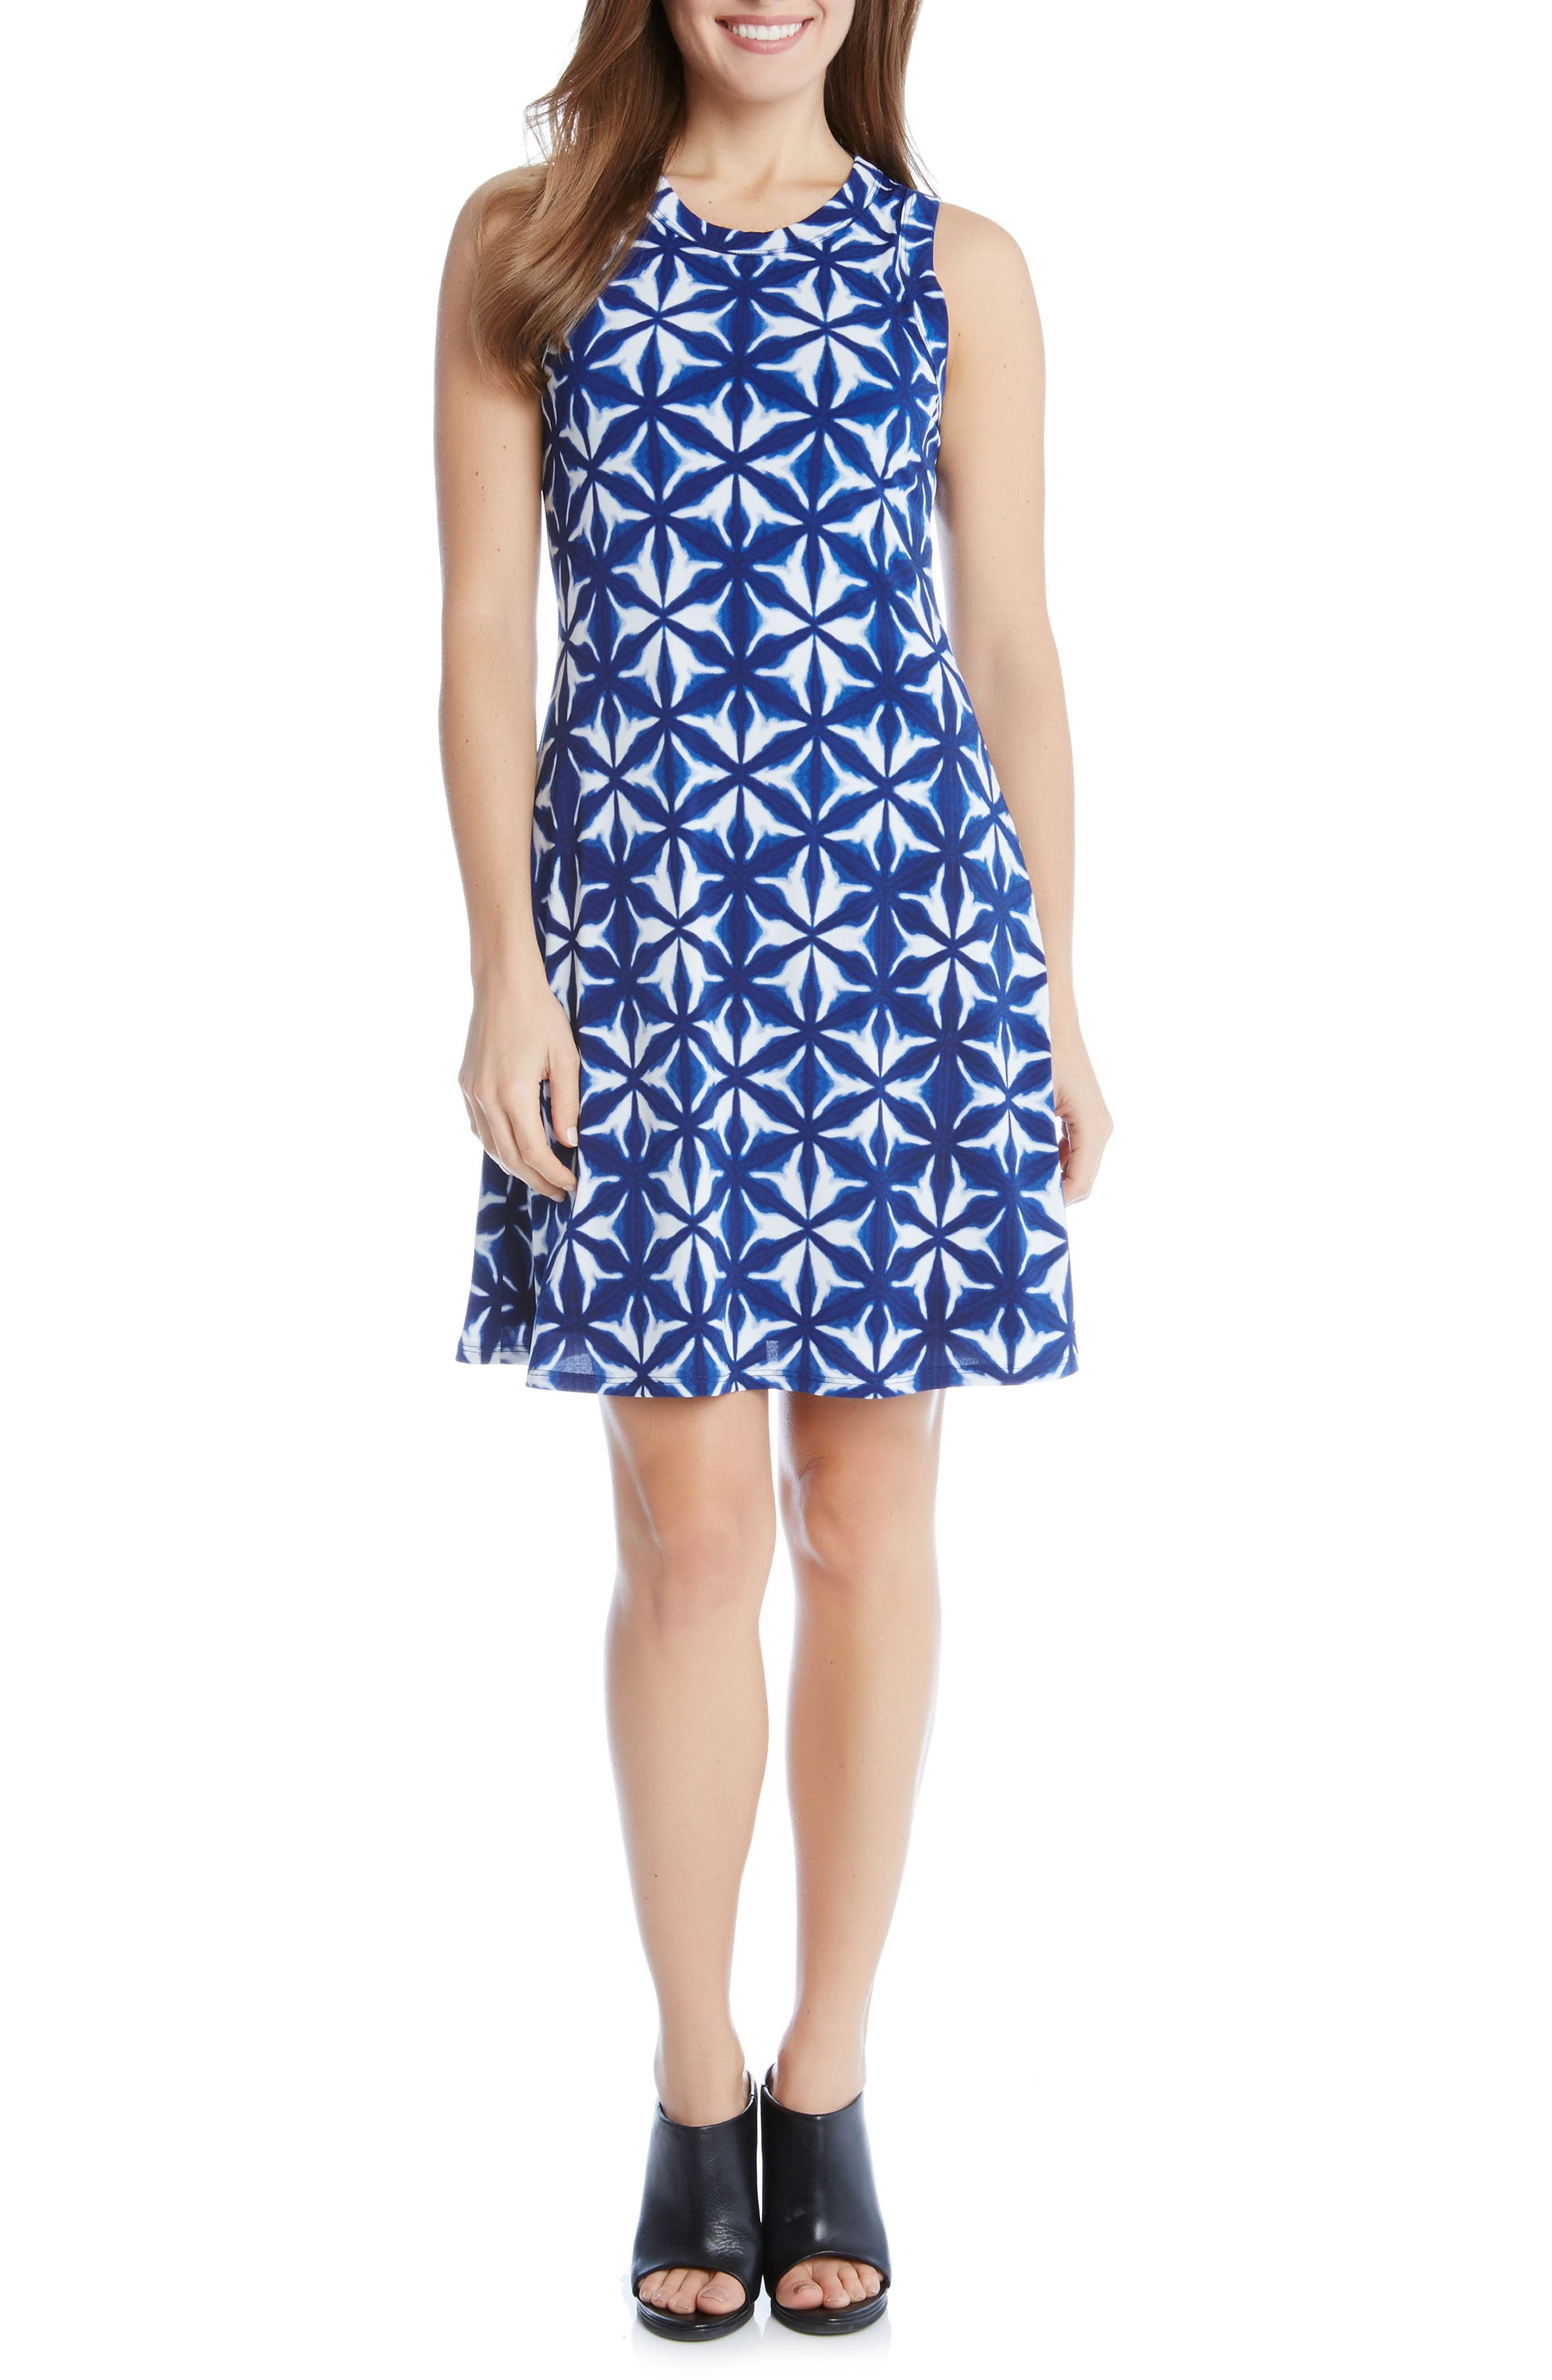 KAREN KANE Kaleidoscope Tie Dye A-Line Dress, Main, color, 460